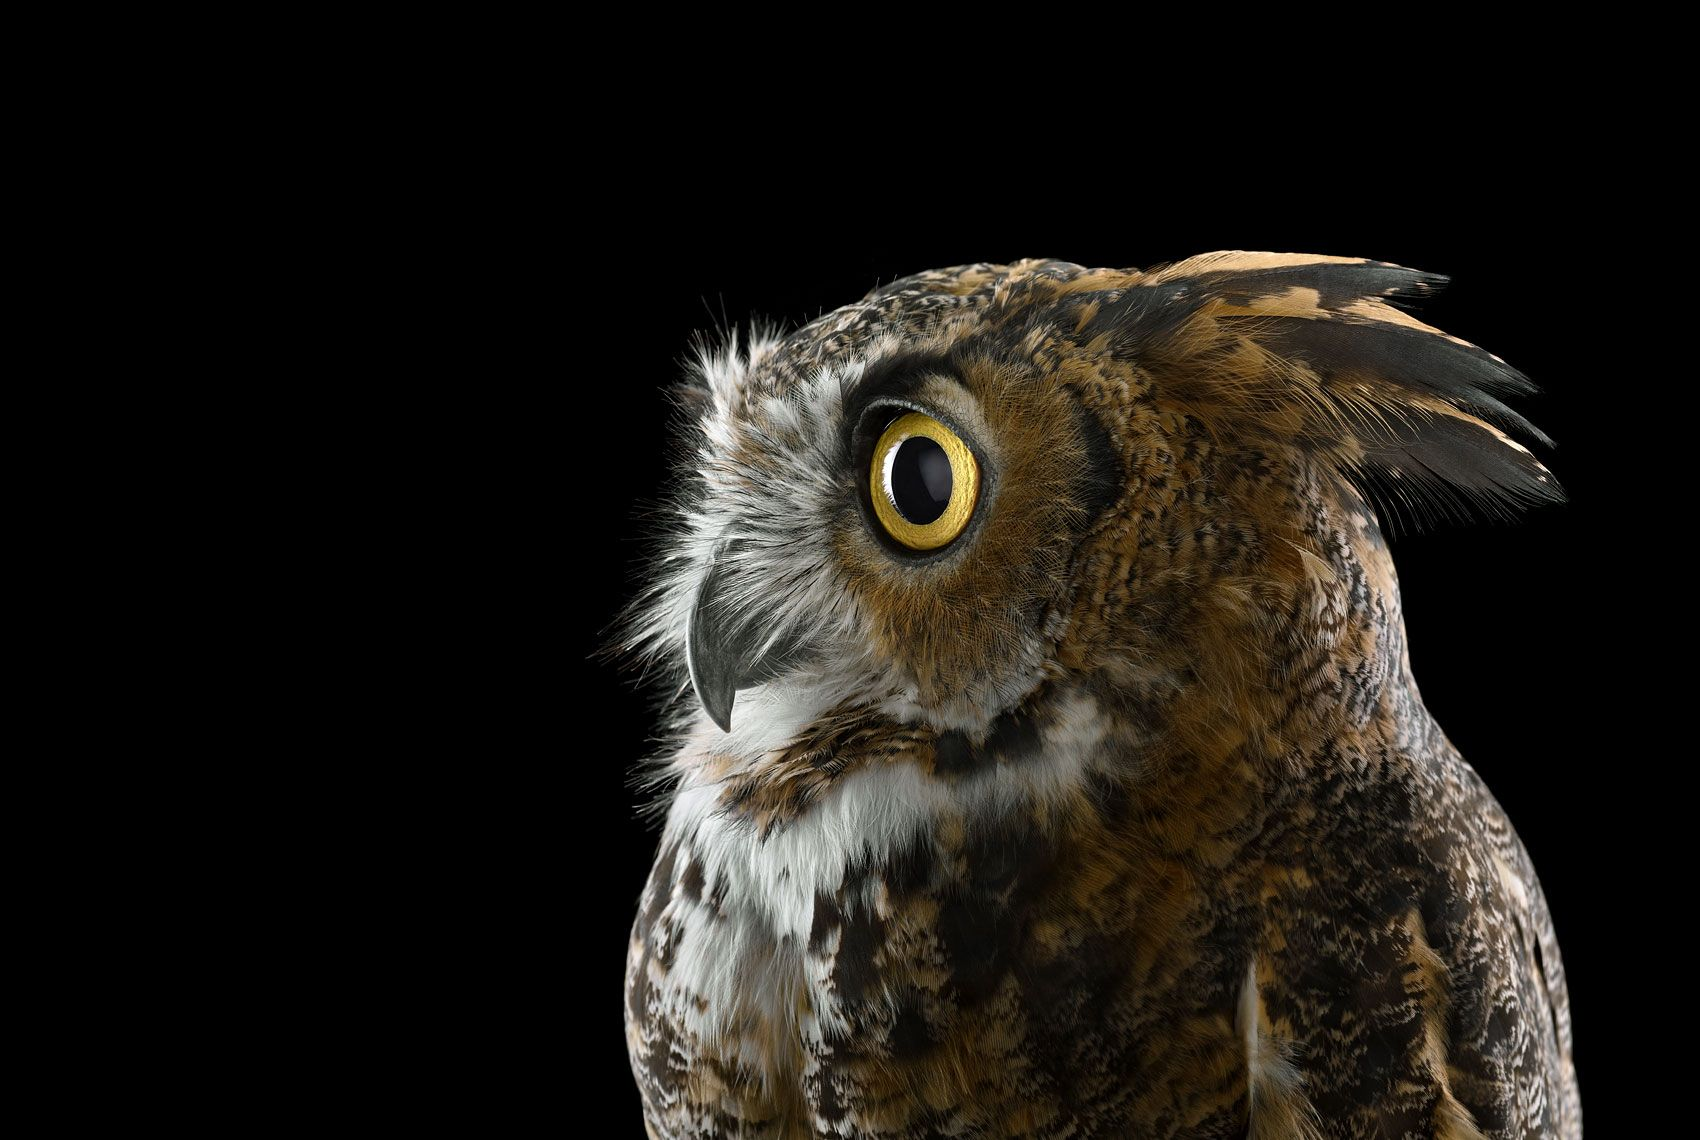 Great Horned Owl #1, Espanola, NM, 2011,Brad Wilson,Photographie contemporaine